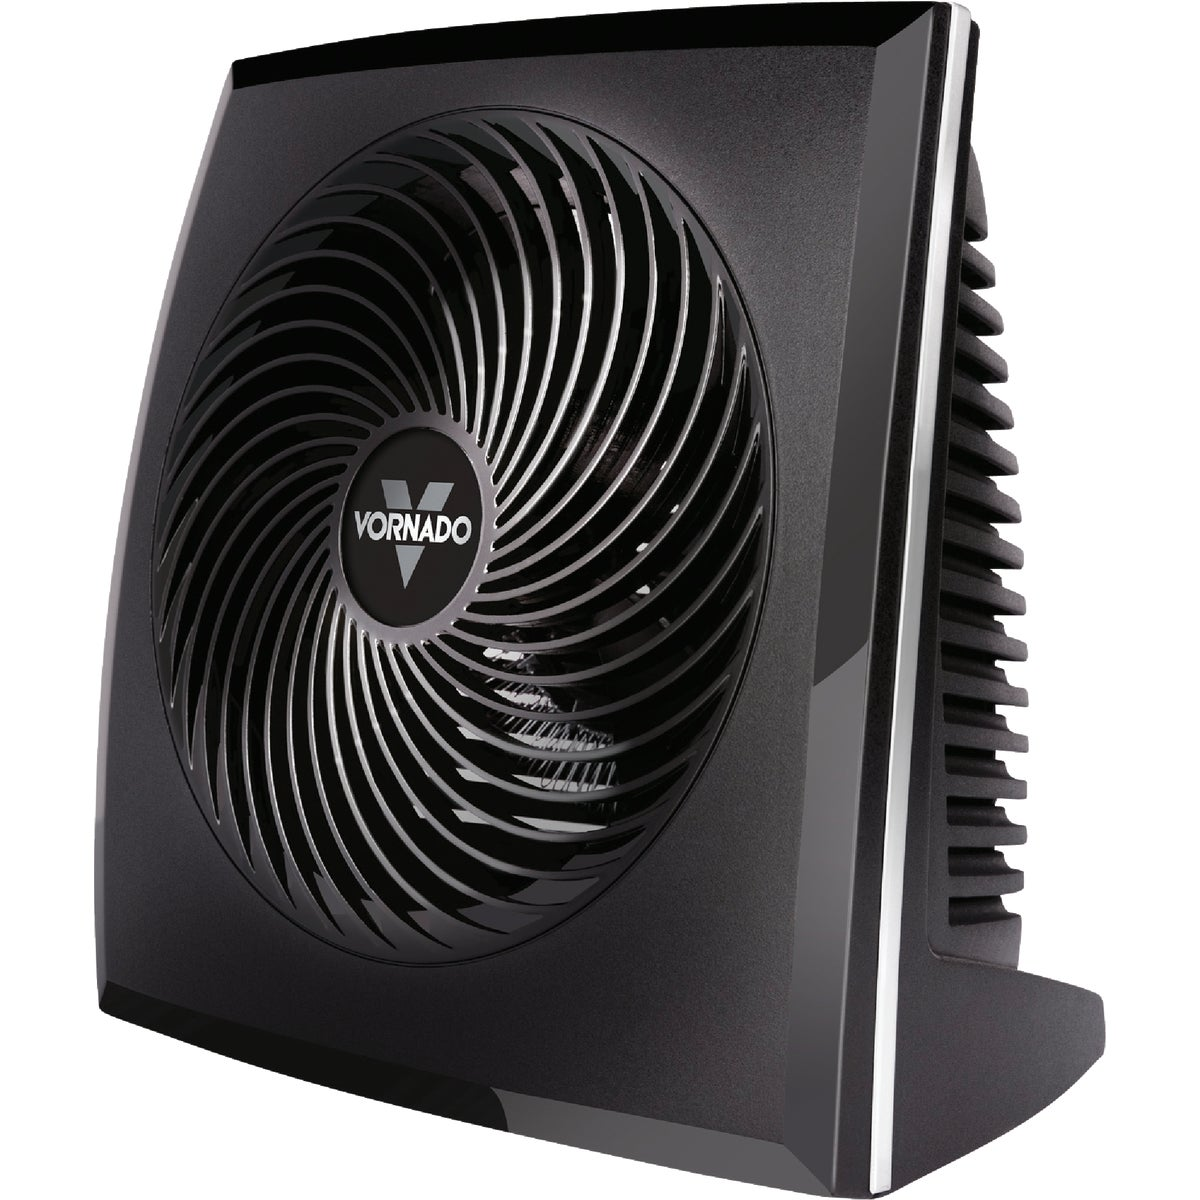 Vornado ELECTRIC HEATER PVH EH1-0054-06